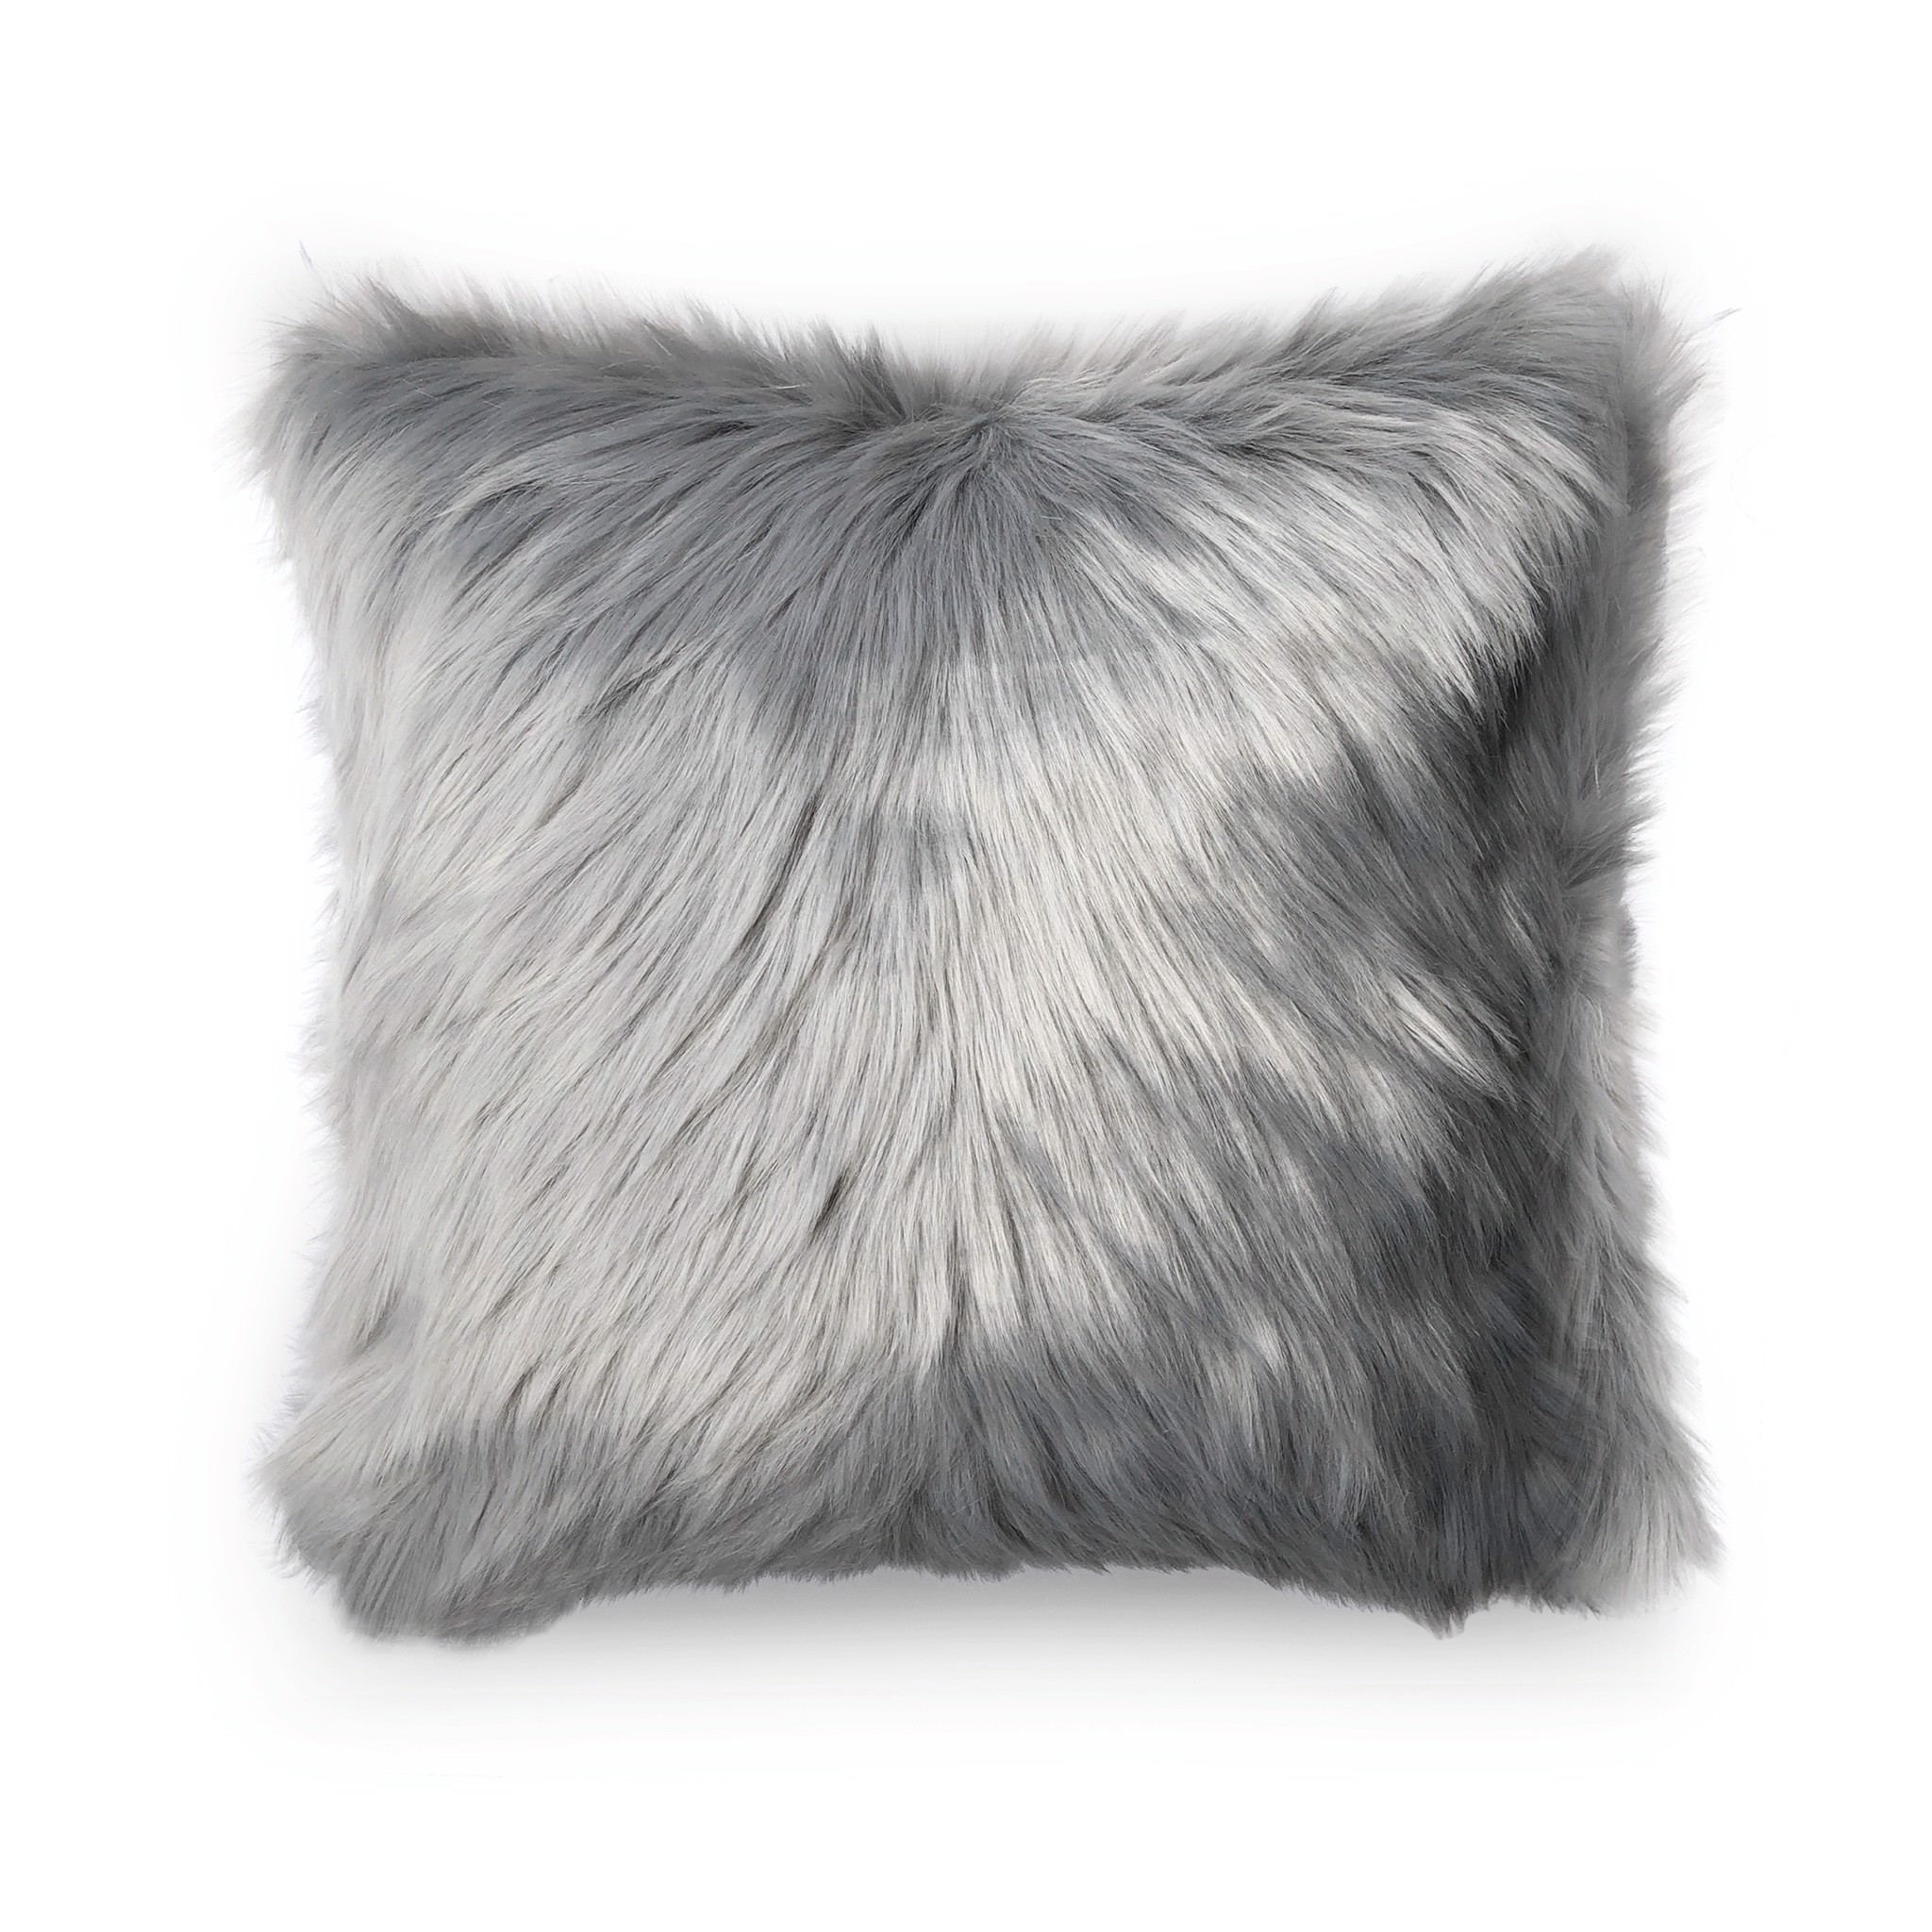 Cushion cover 77 Luxury Soft Fleece Grey